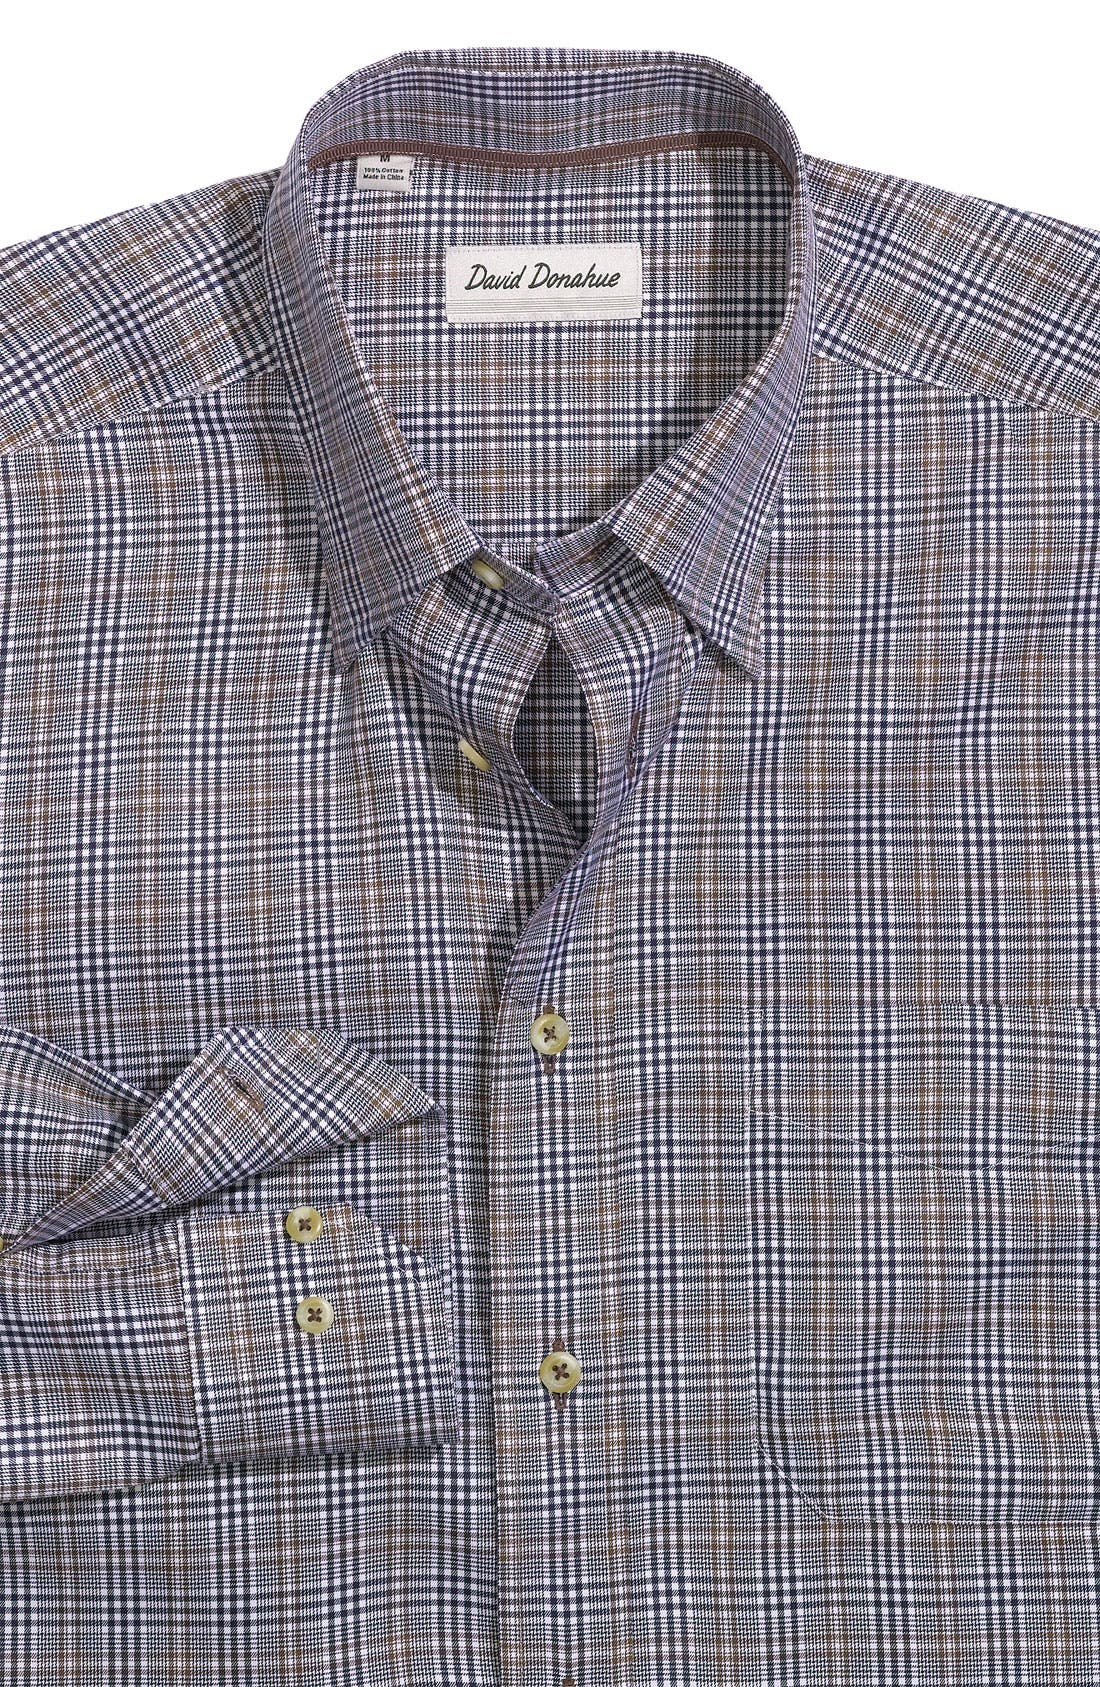 Alternate Image 1 Selected - David Donahue Woven Sport Shirt